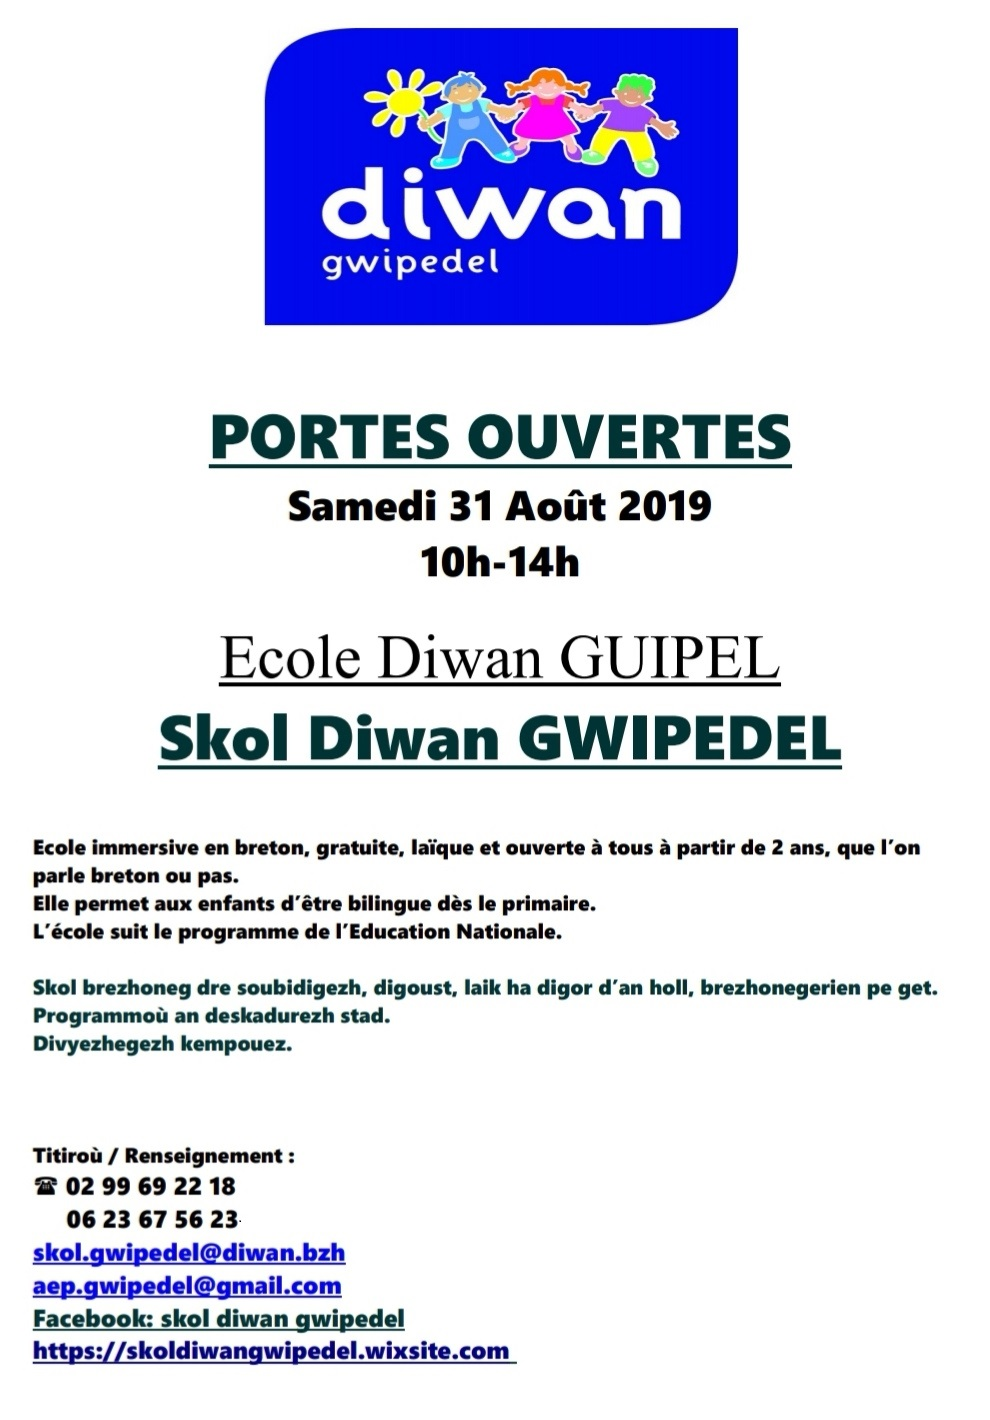 PortesouvertesDiwan082019